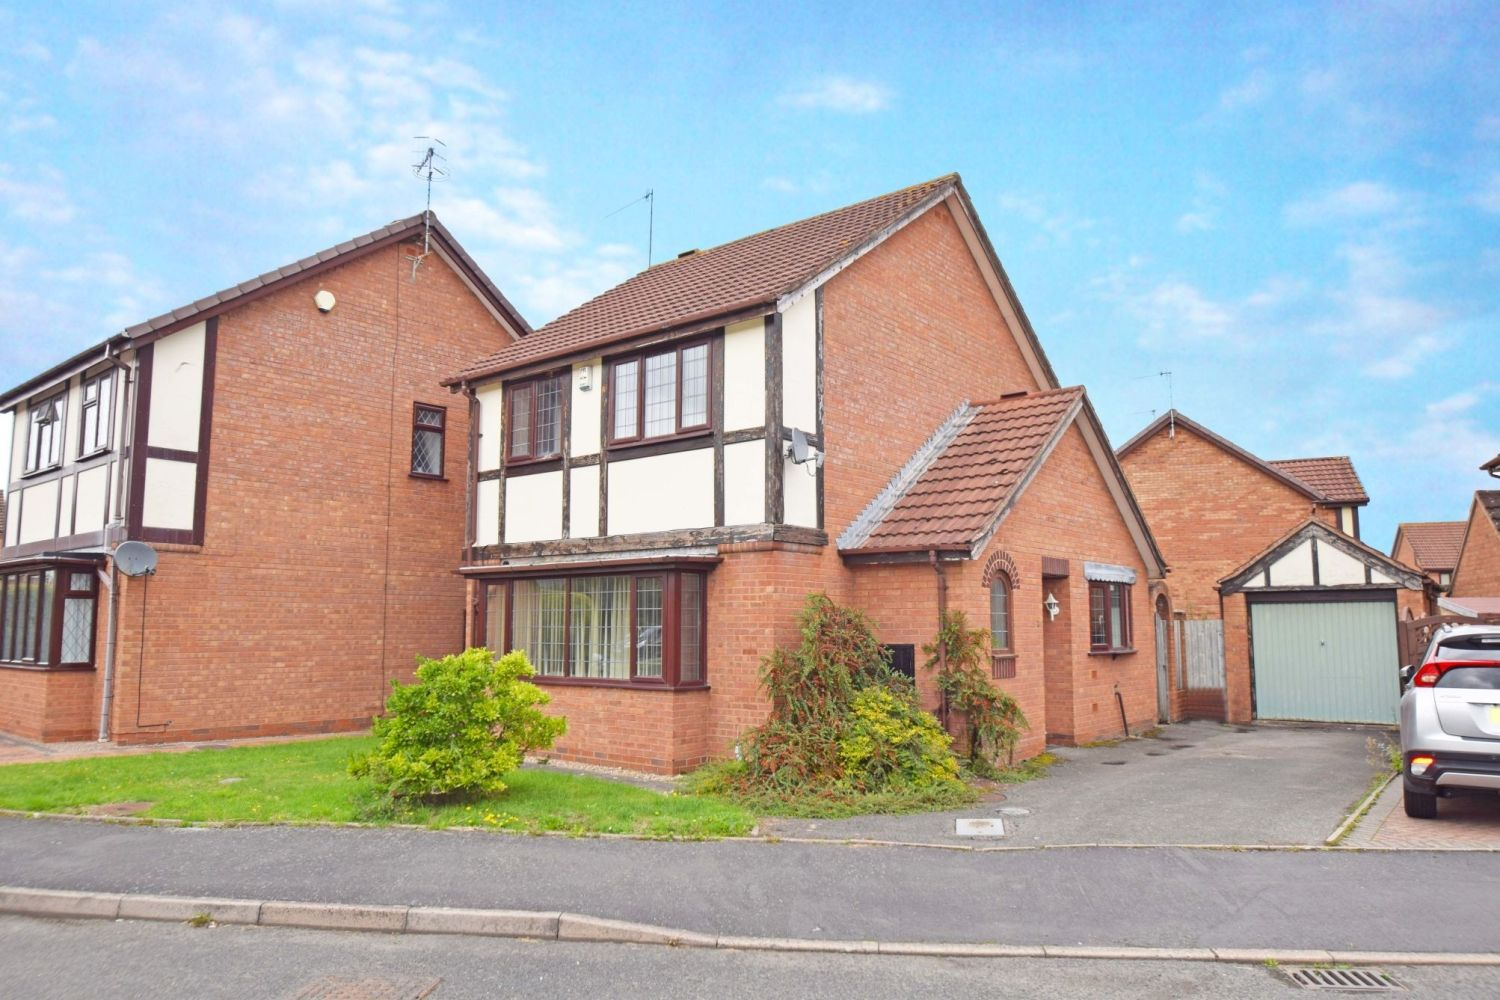 3 bed detached for sale in Avon Close, Stoke Heath, Bromsgrove, B60 - Property Image 1